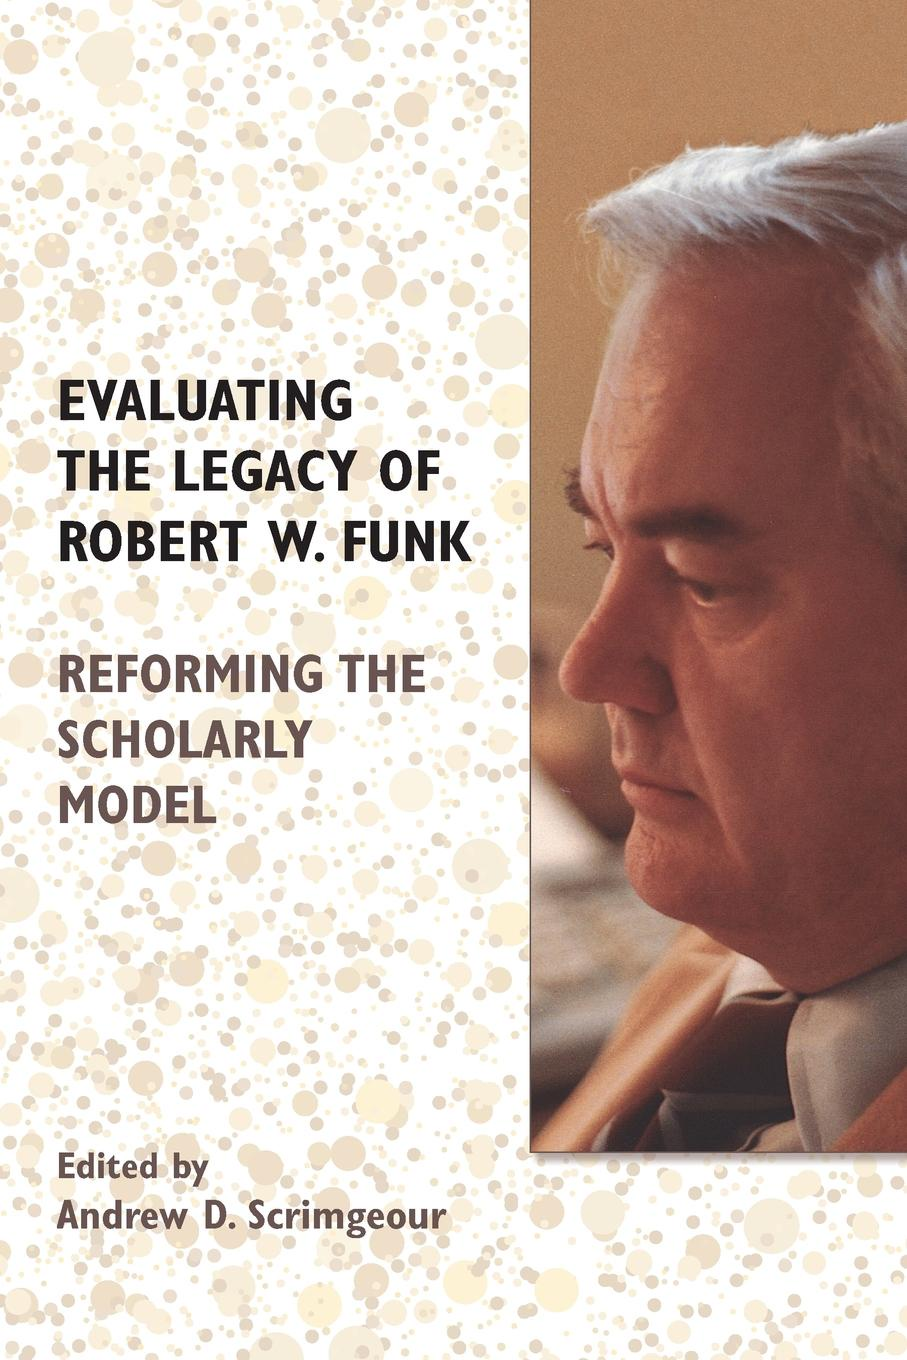 лучшая цена Evaluating the Legacy of Robert W. Funk. Reforming the Scholarly Model